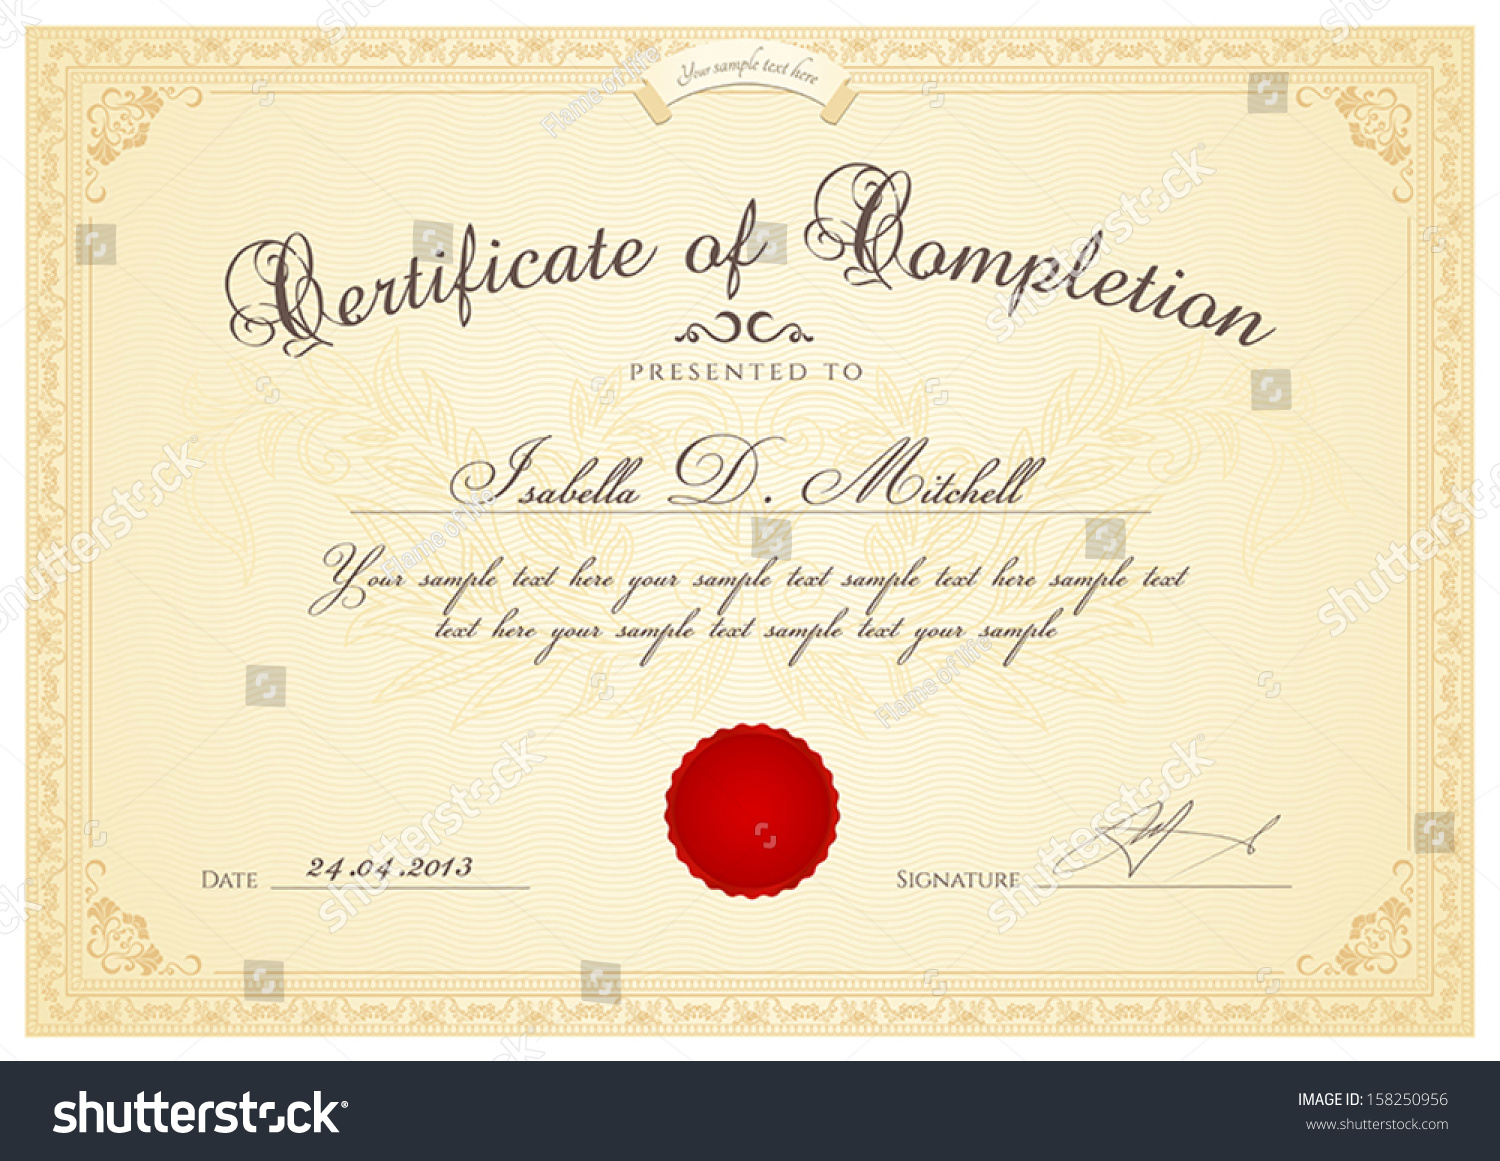 Certificate diploma completion design template background certificate diploma of completion design template background with guilloche pattern watermark yelopaper Choice Image